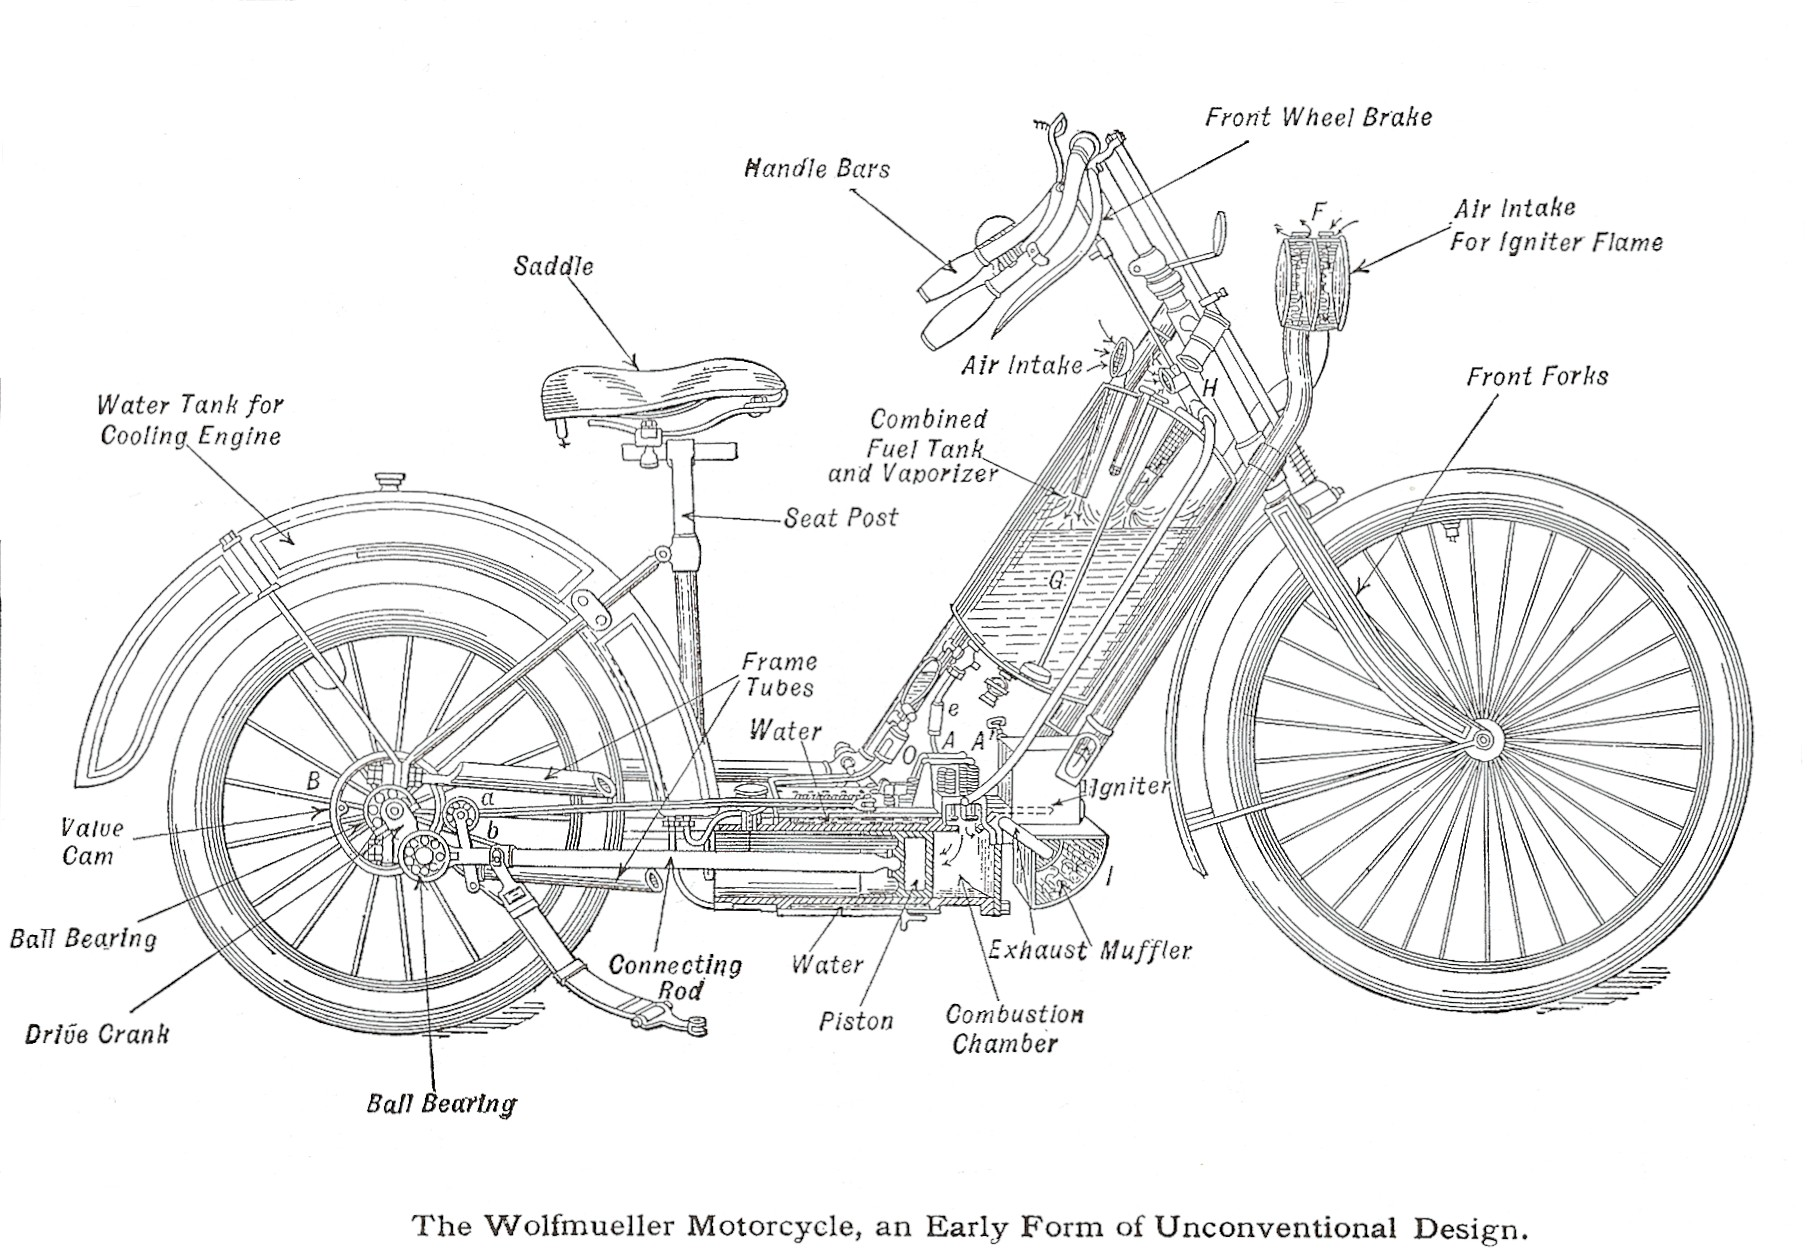 Parts Of A Car Wheel Diagram File 1894 Hildebrand & Wolfmüller Diagram Wikimedia Mons Of Parts Of A Car Wheel Diagram